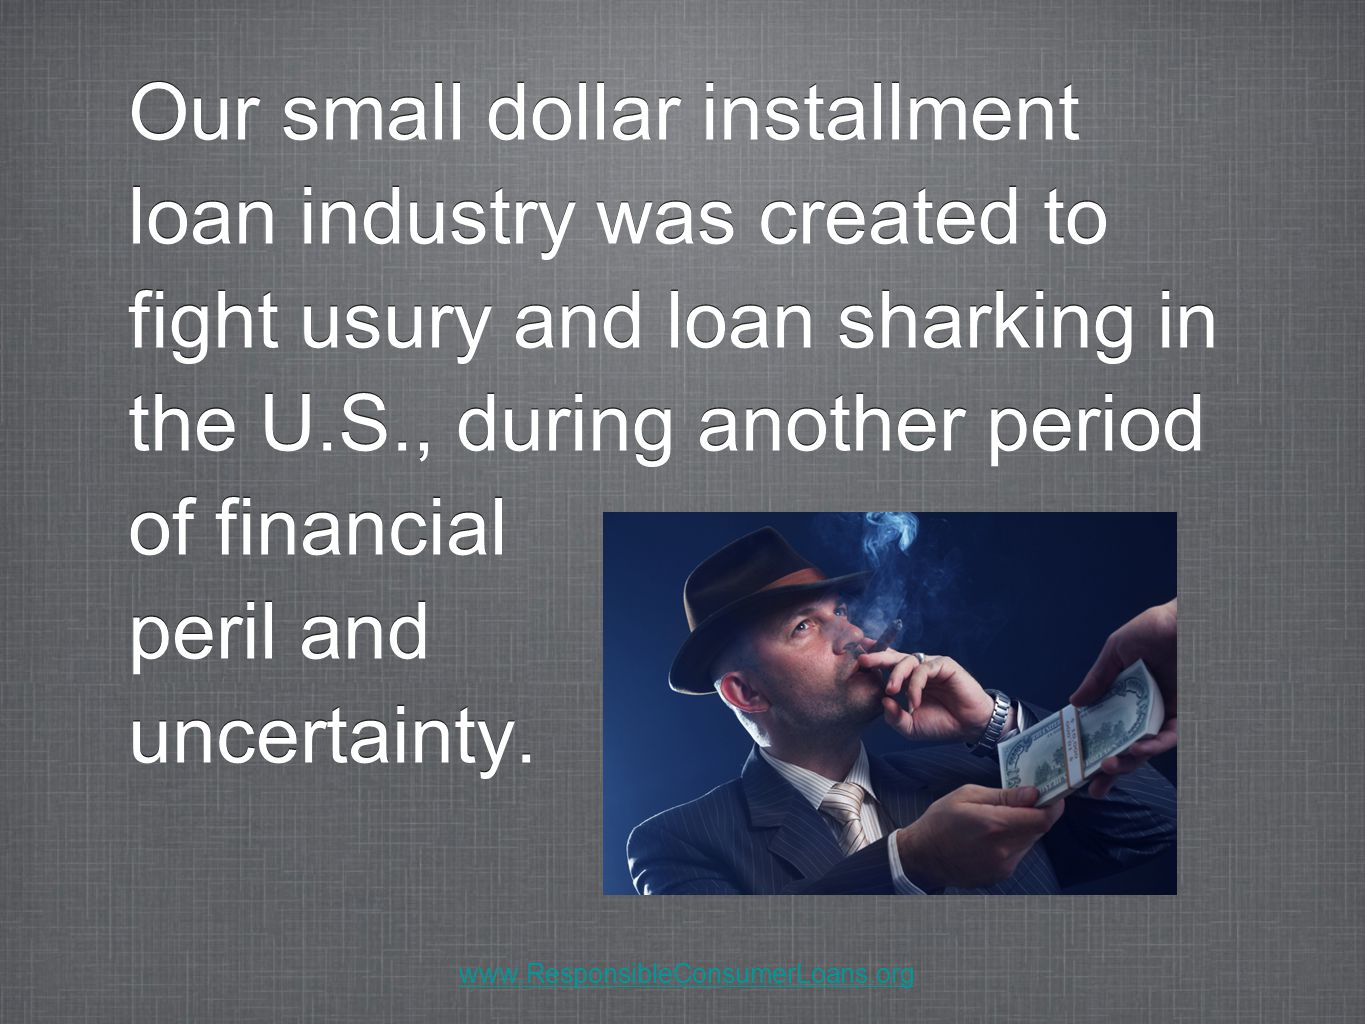 Why not support our fully regulated installment loan industry, and help them to provide the smallest dollar loans that so many people need and want.